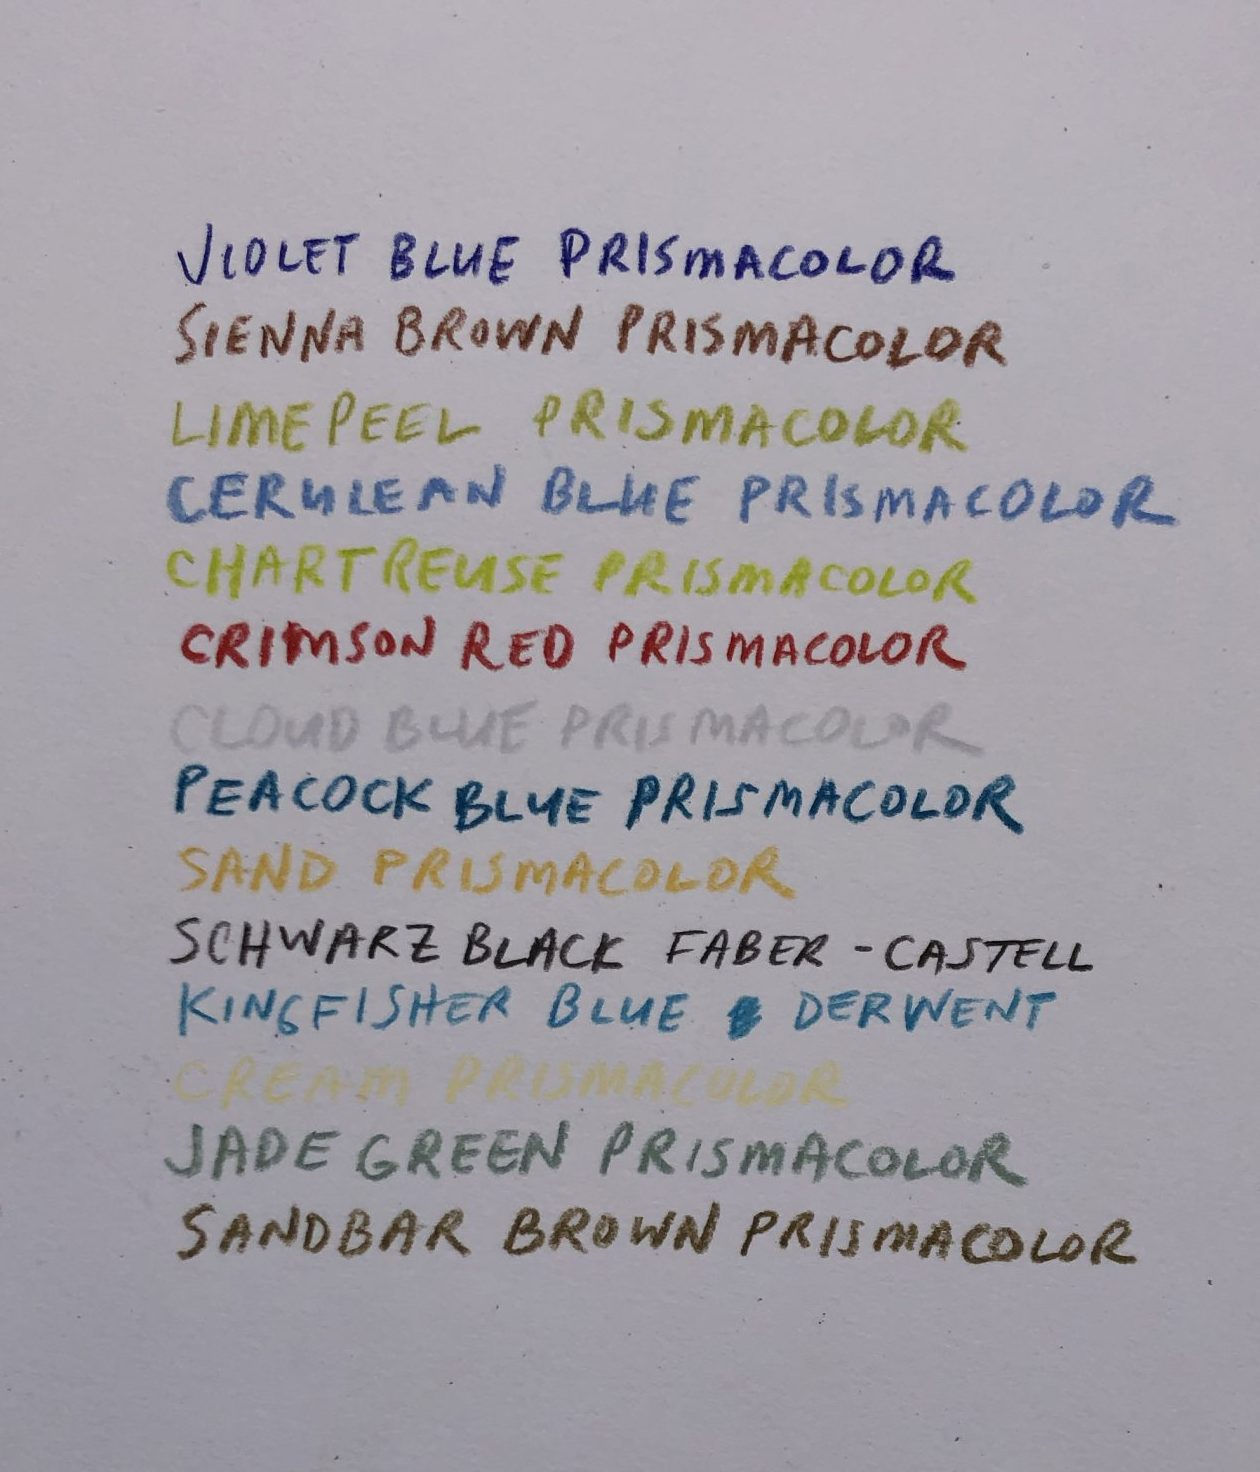 list of the colors used in the artist's visual response